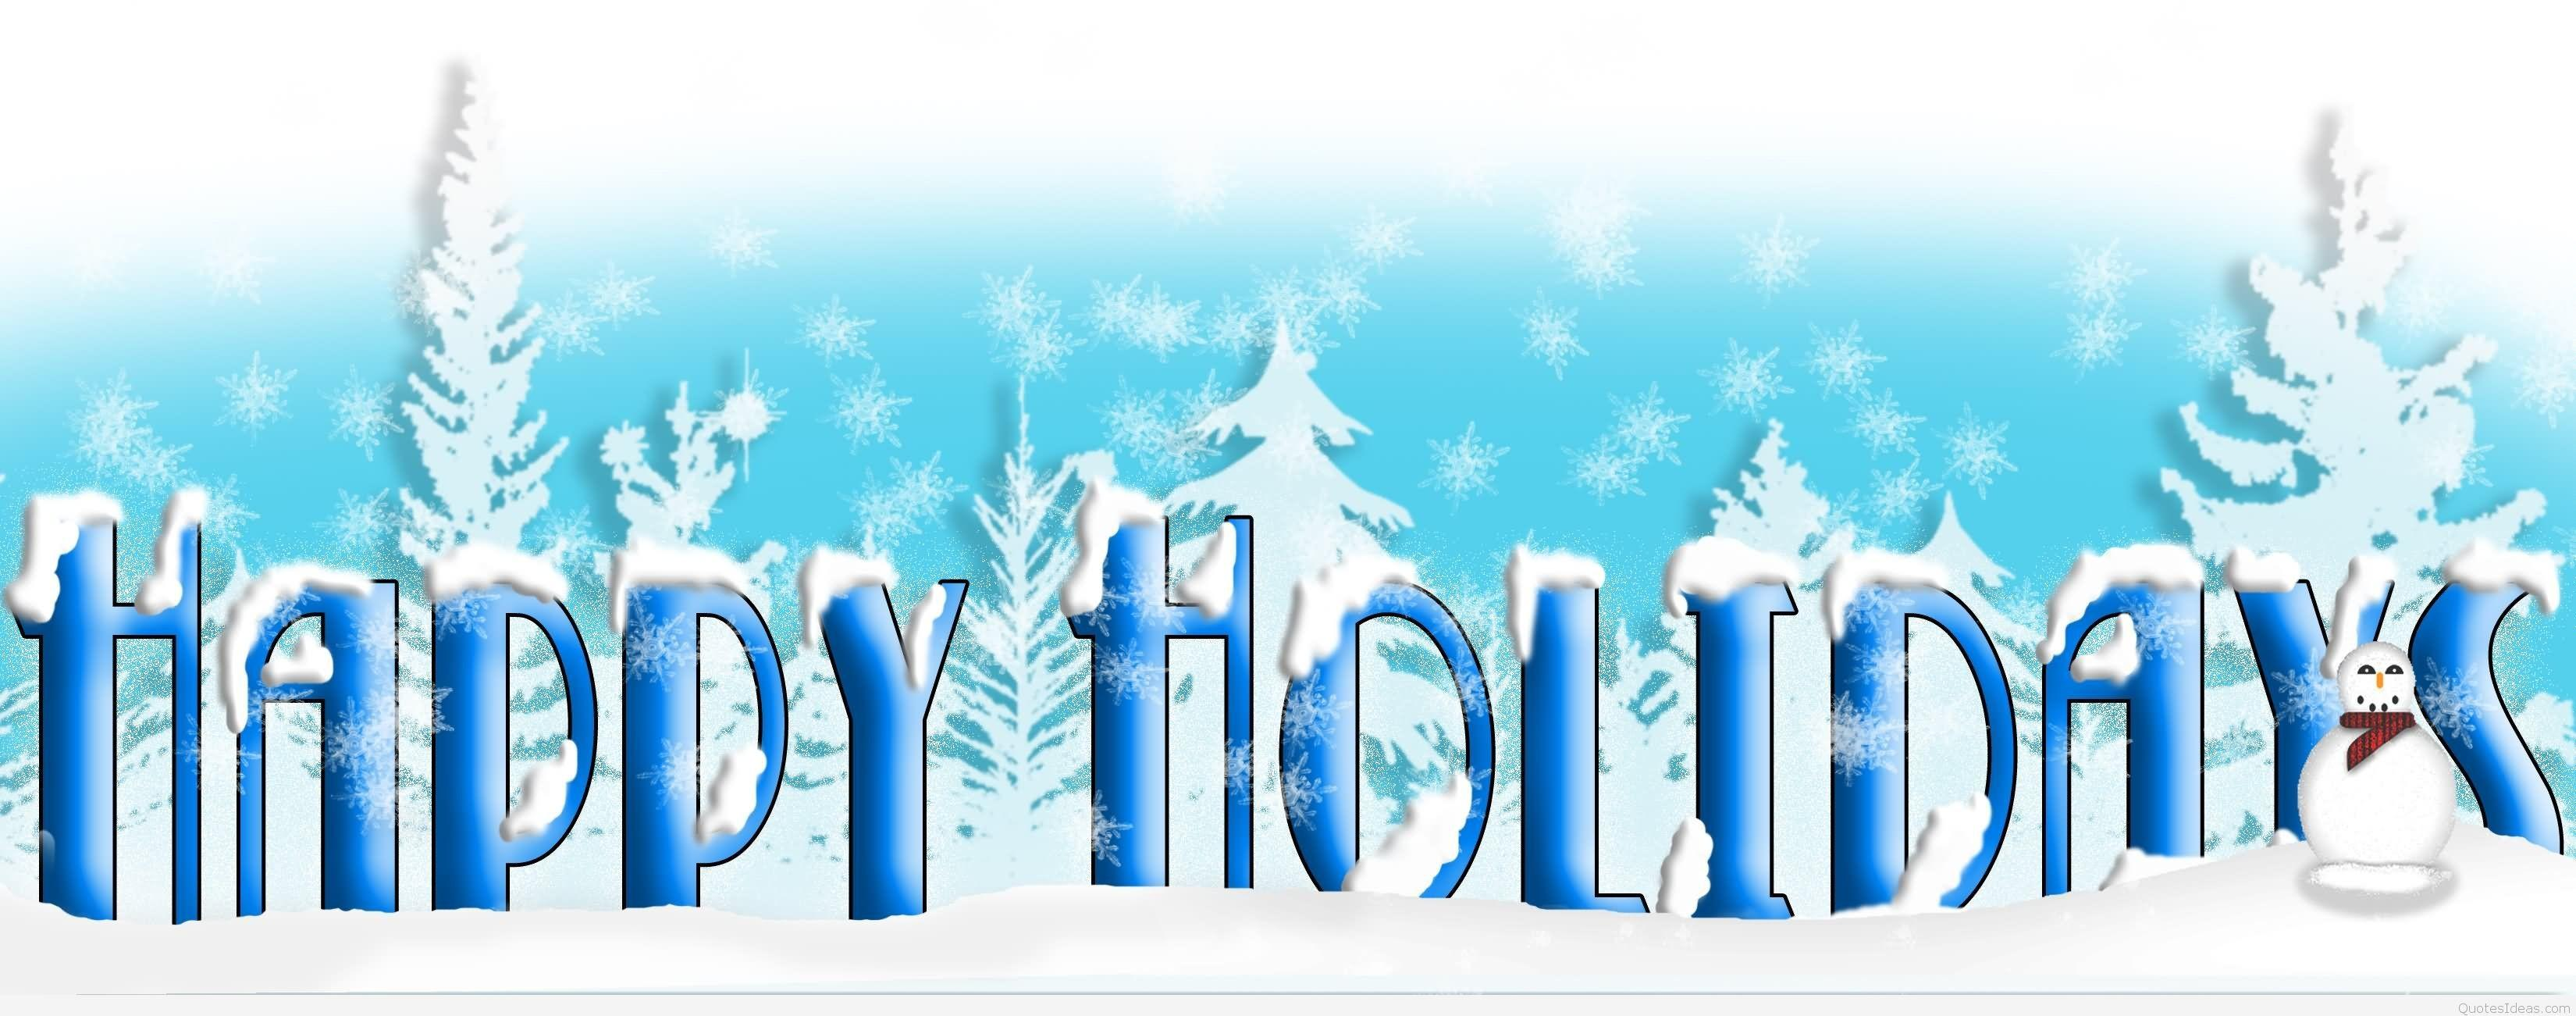 Best Happy Winter Holidays Merry Christmas Wishes